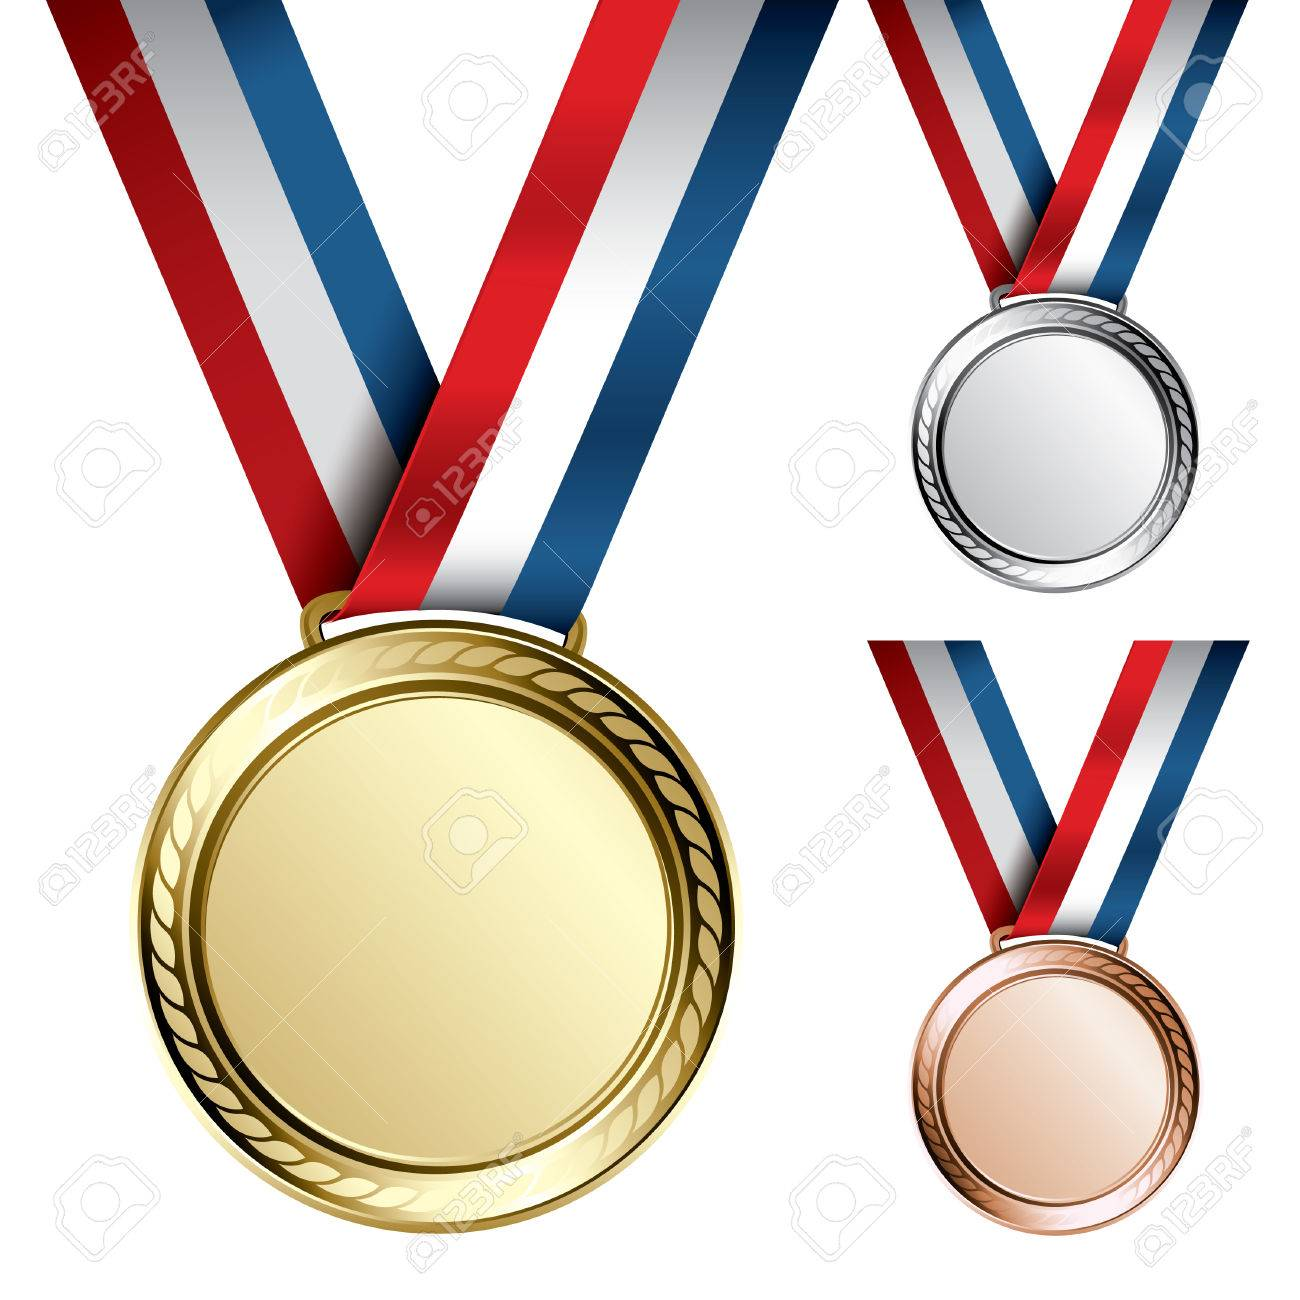 hight resolution of olympic silver medal clipart